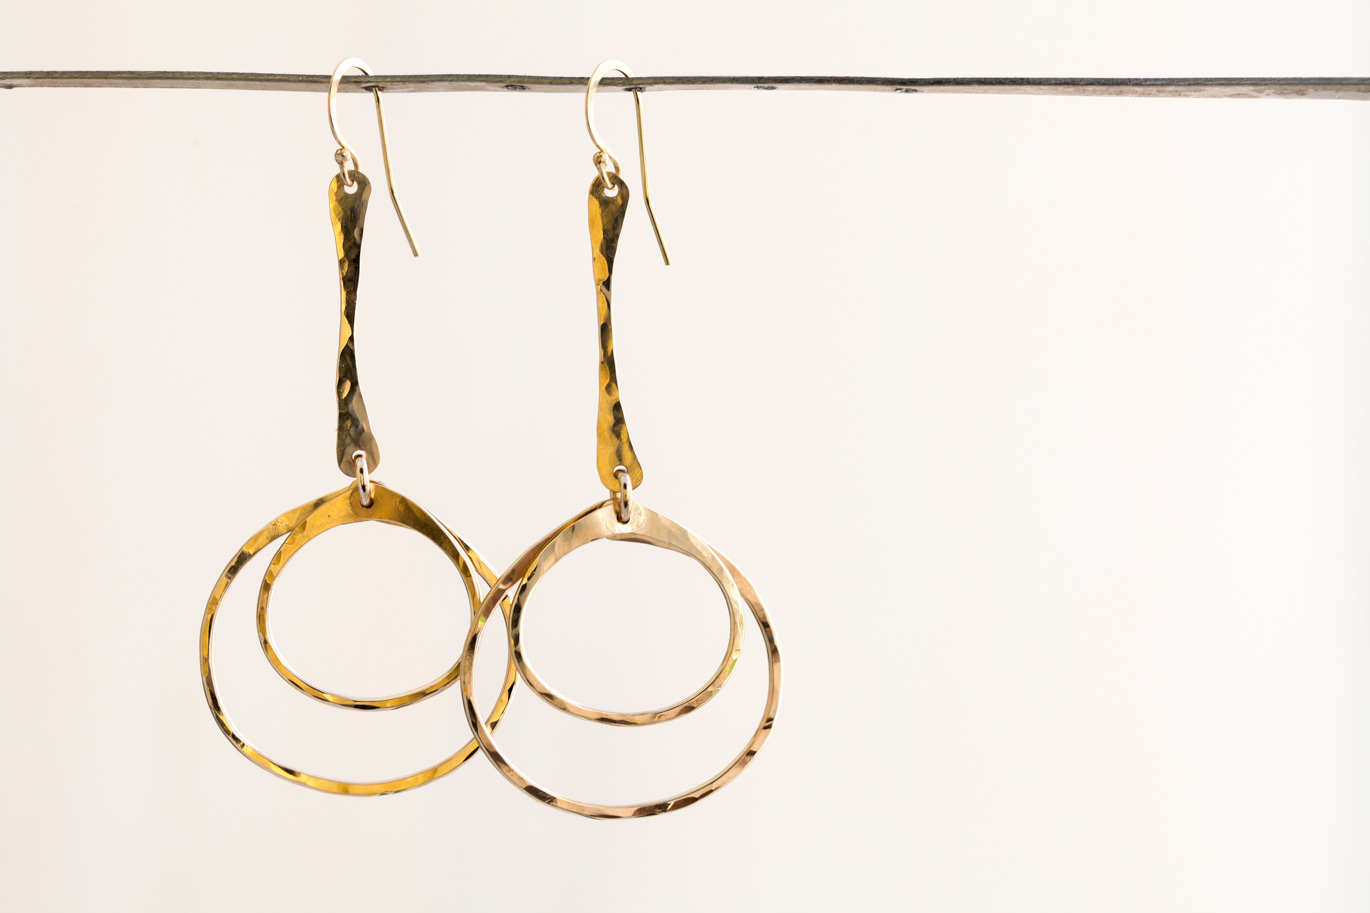 Double Hiness Rustic Dangle Hoop Earrings Hammered Gold